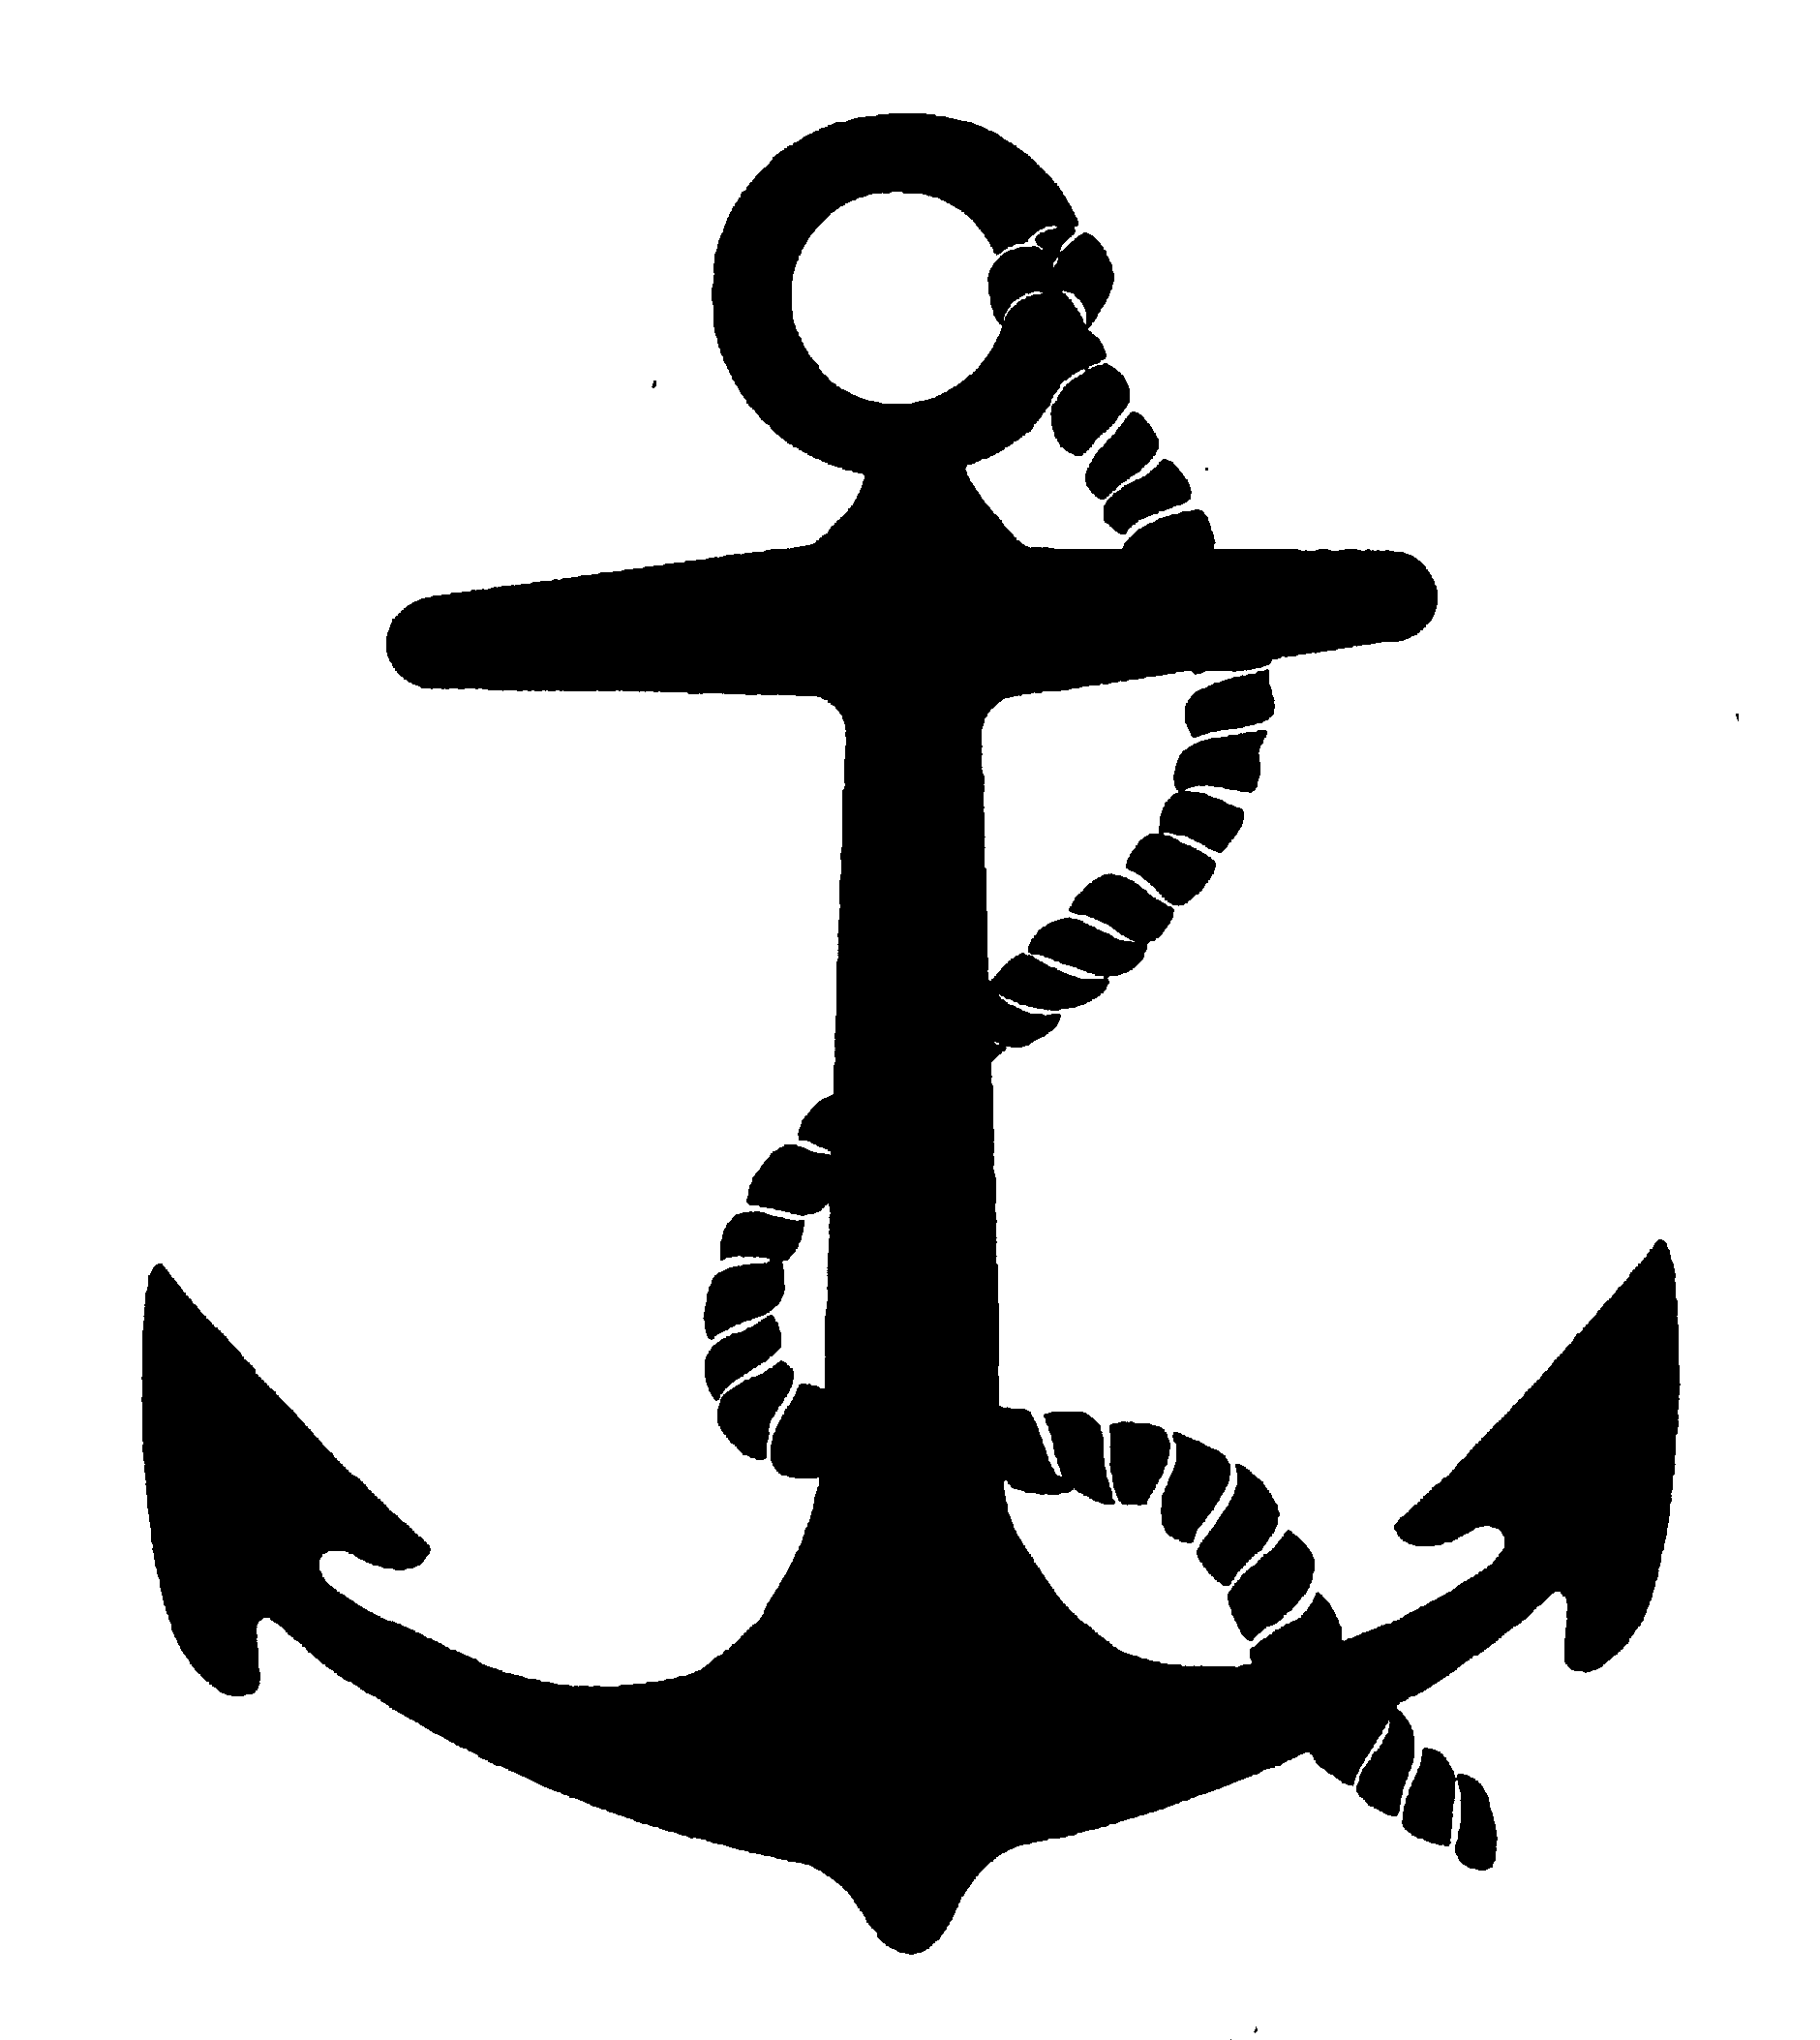 Us Navy Clipart - Cliparts.co